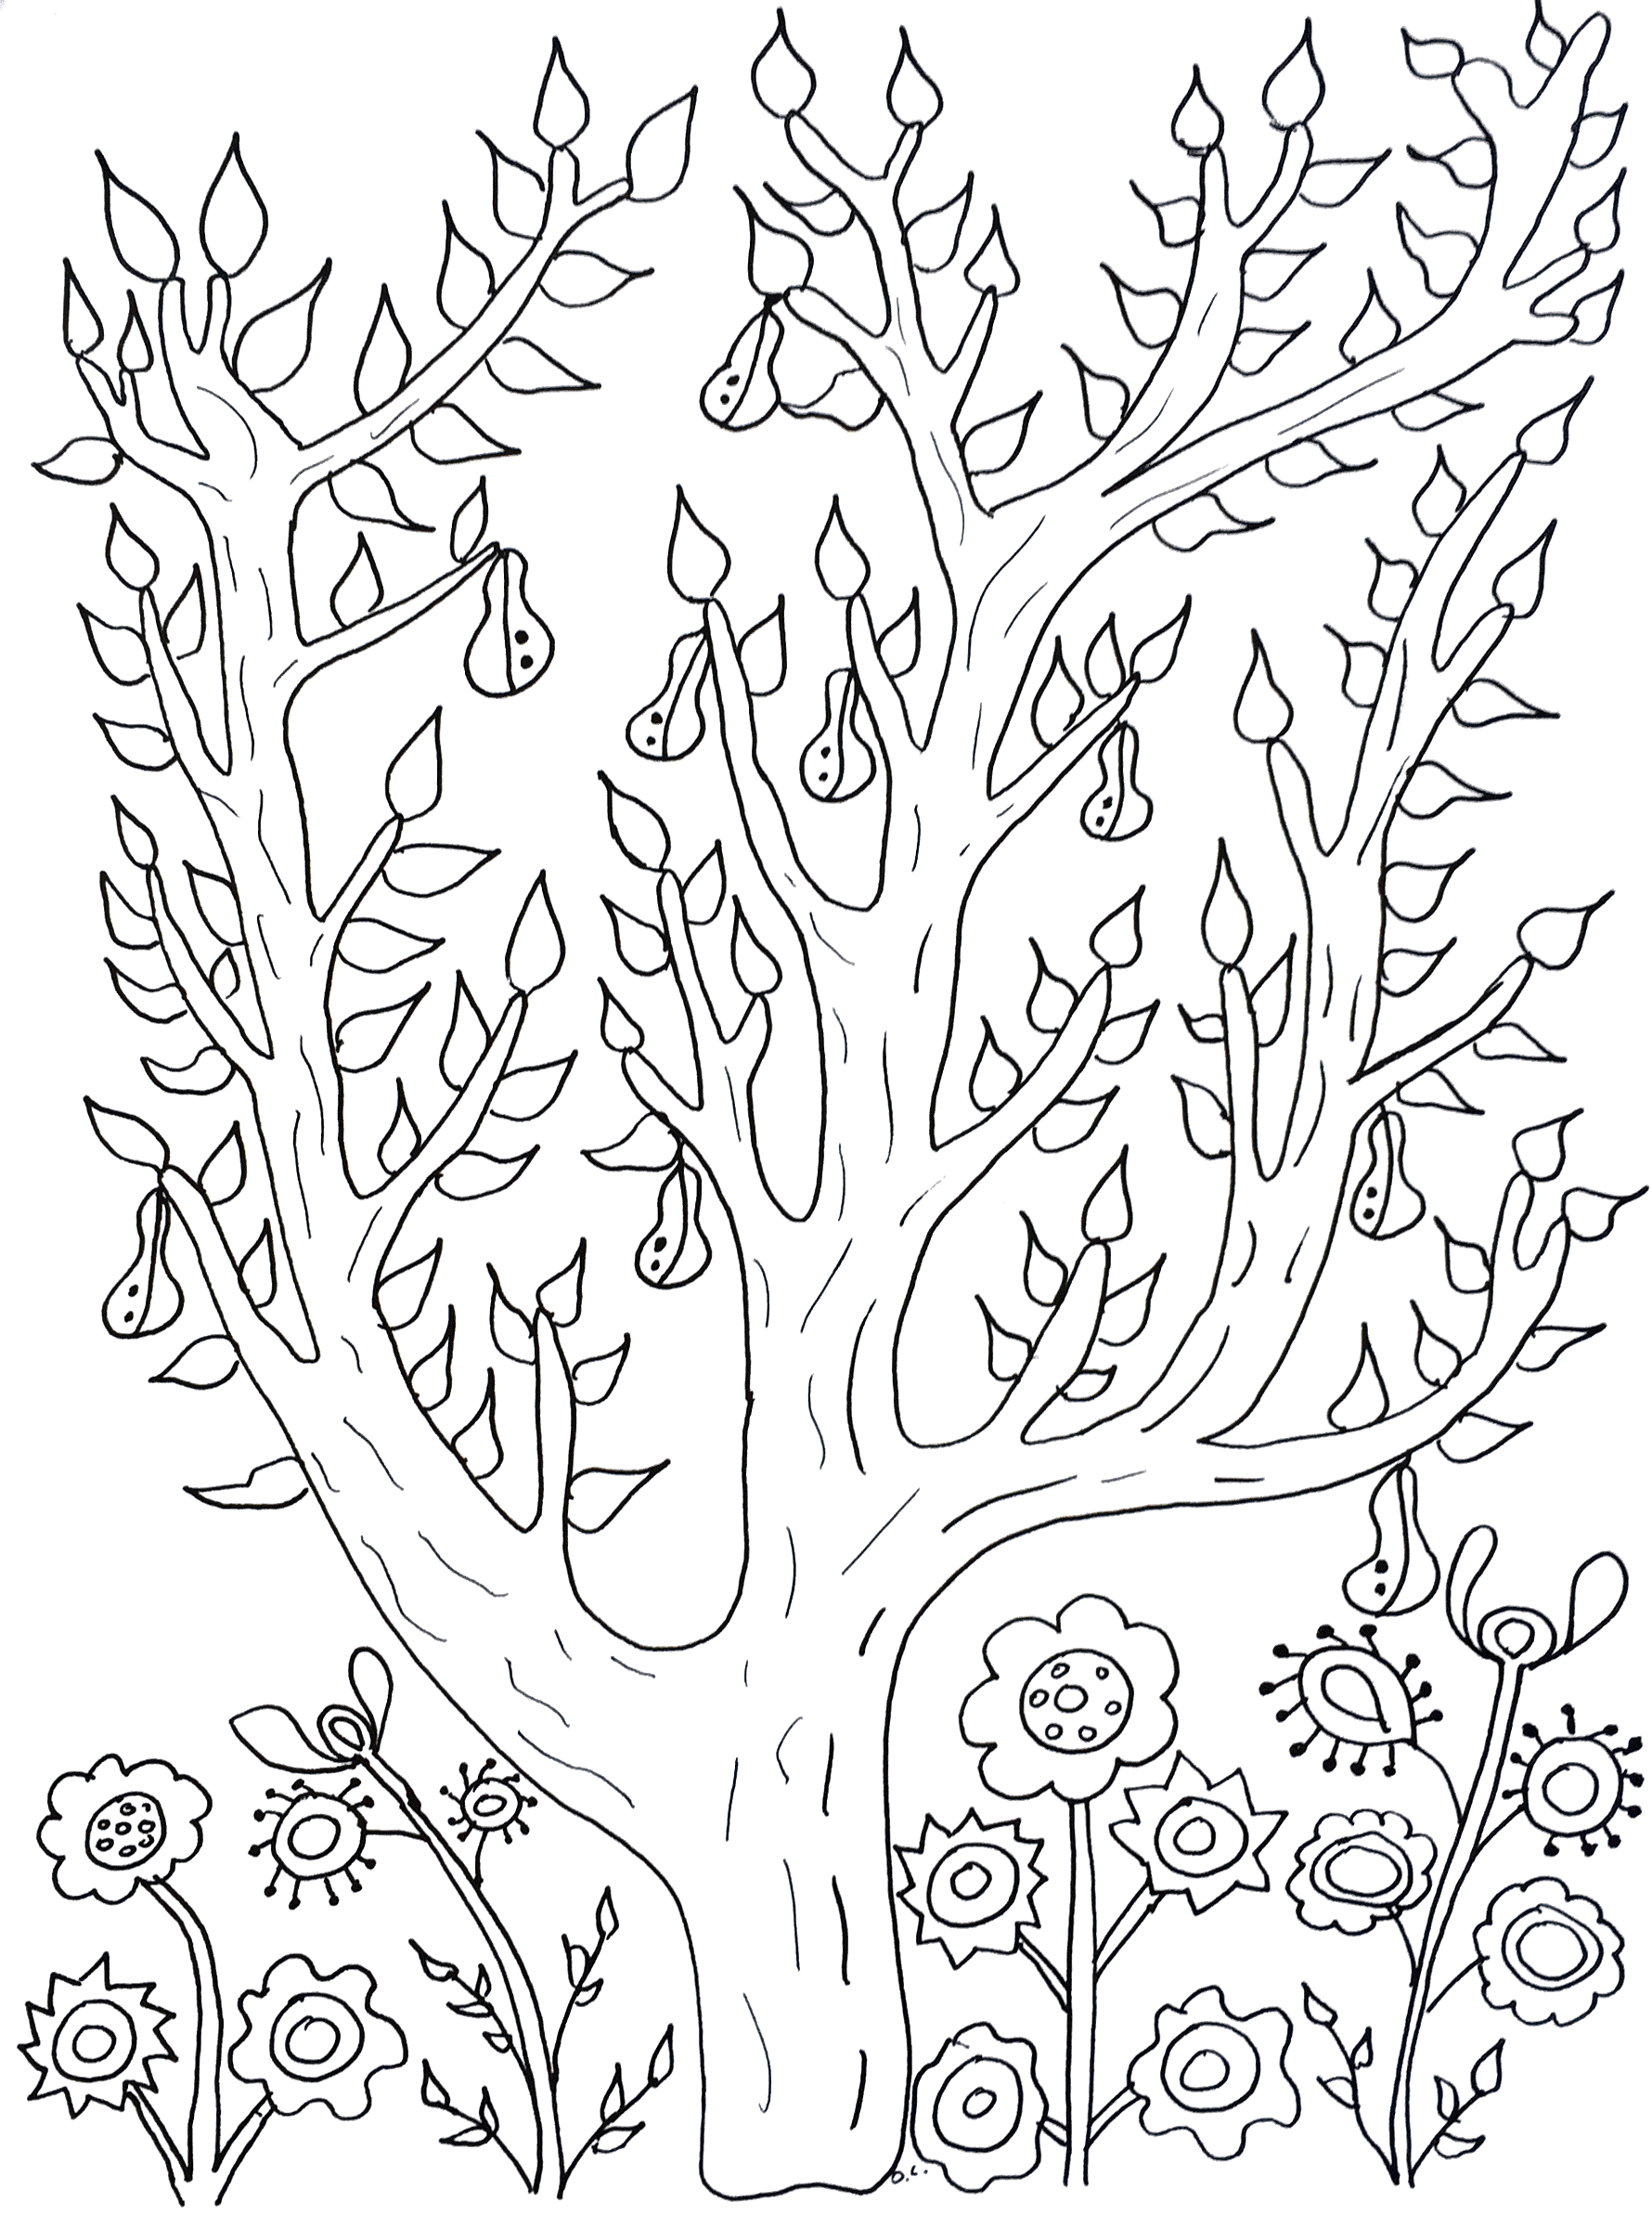 Coloring pages trees and flowers - Cute Tree With Leaves And Pears From The Gallery Flowers And Vegetation Artist